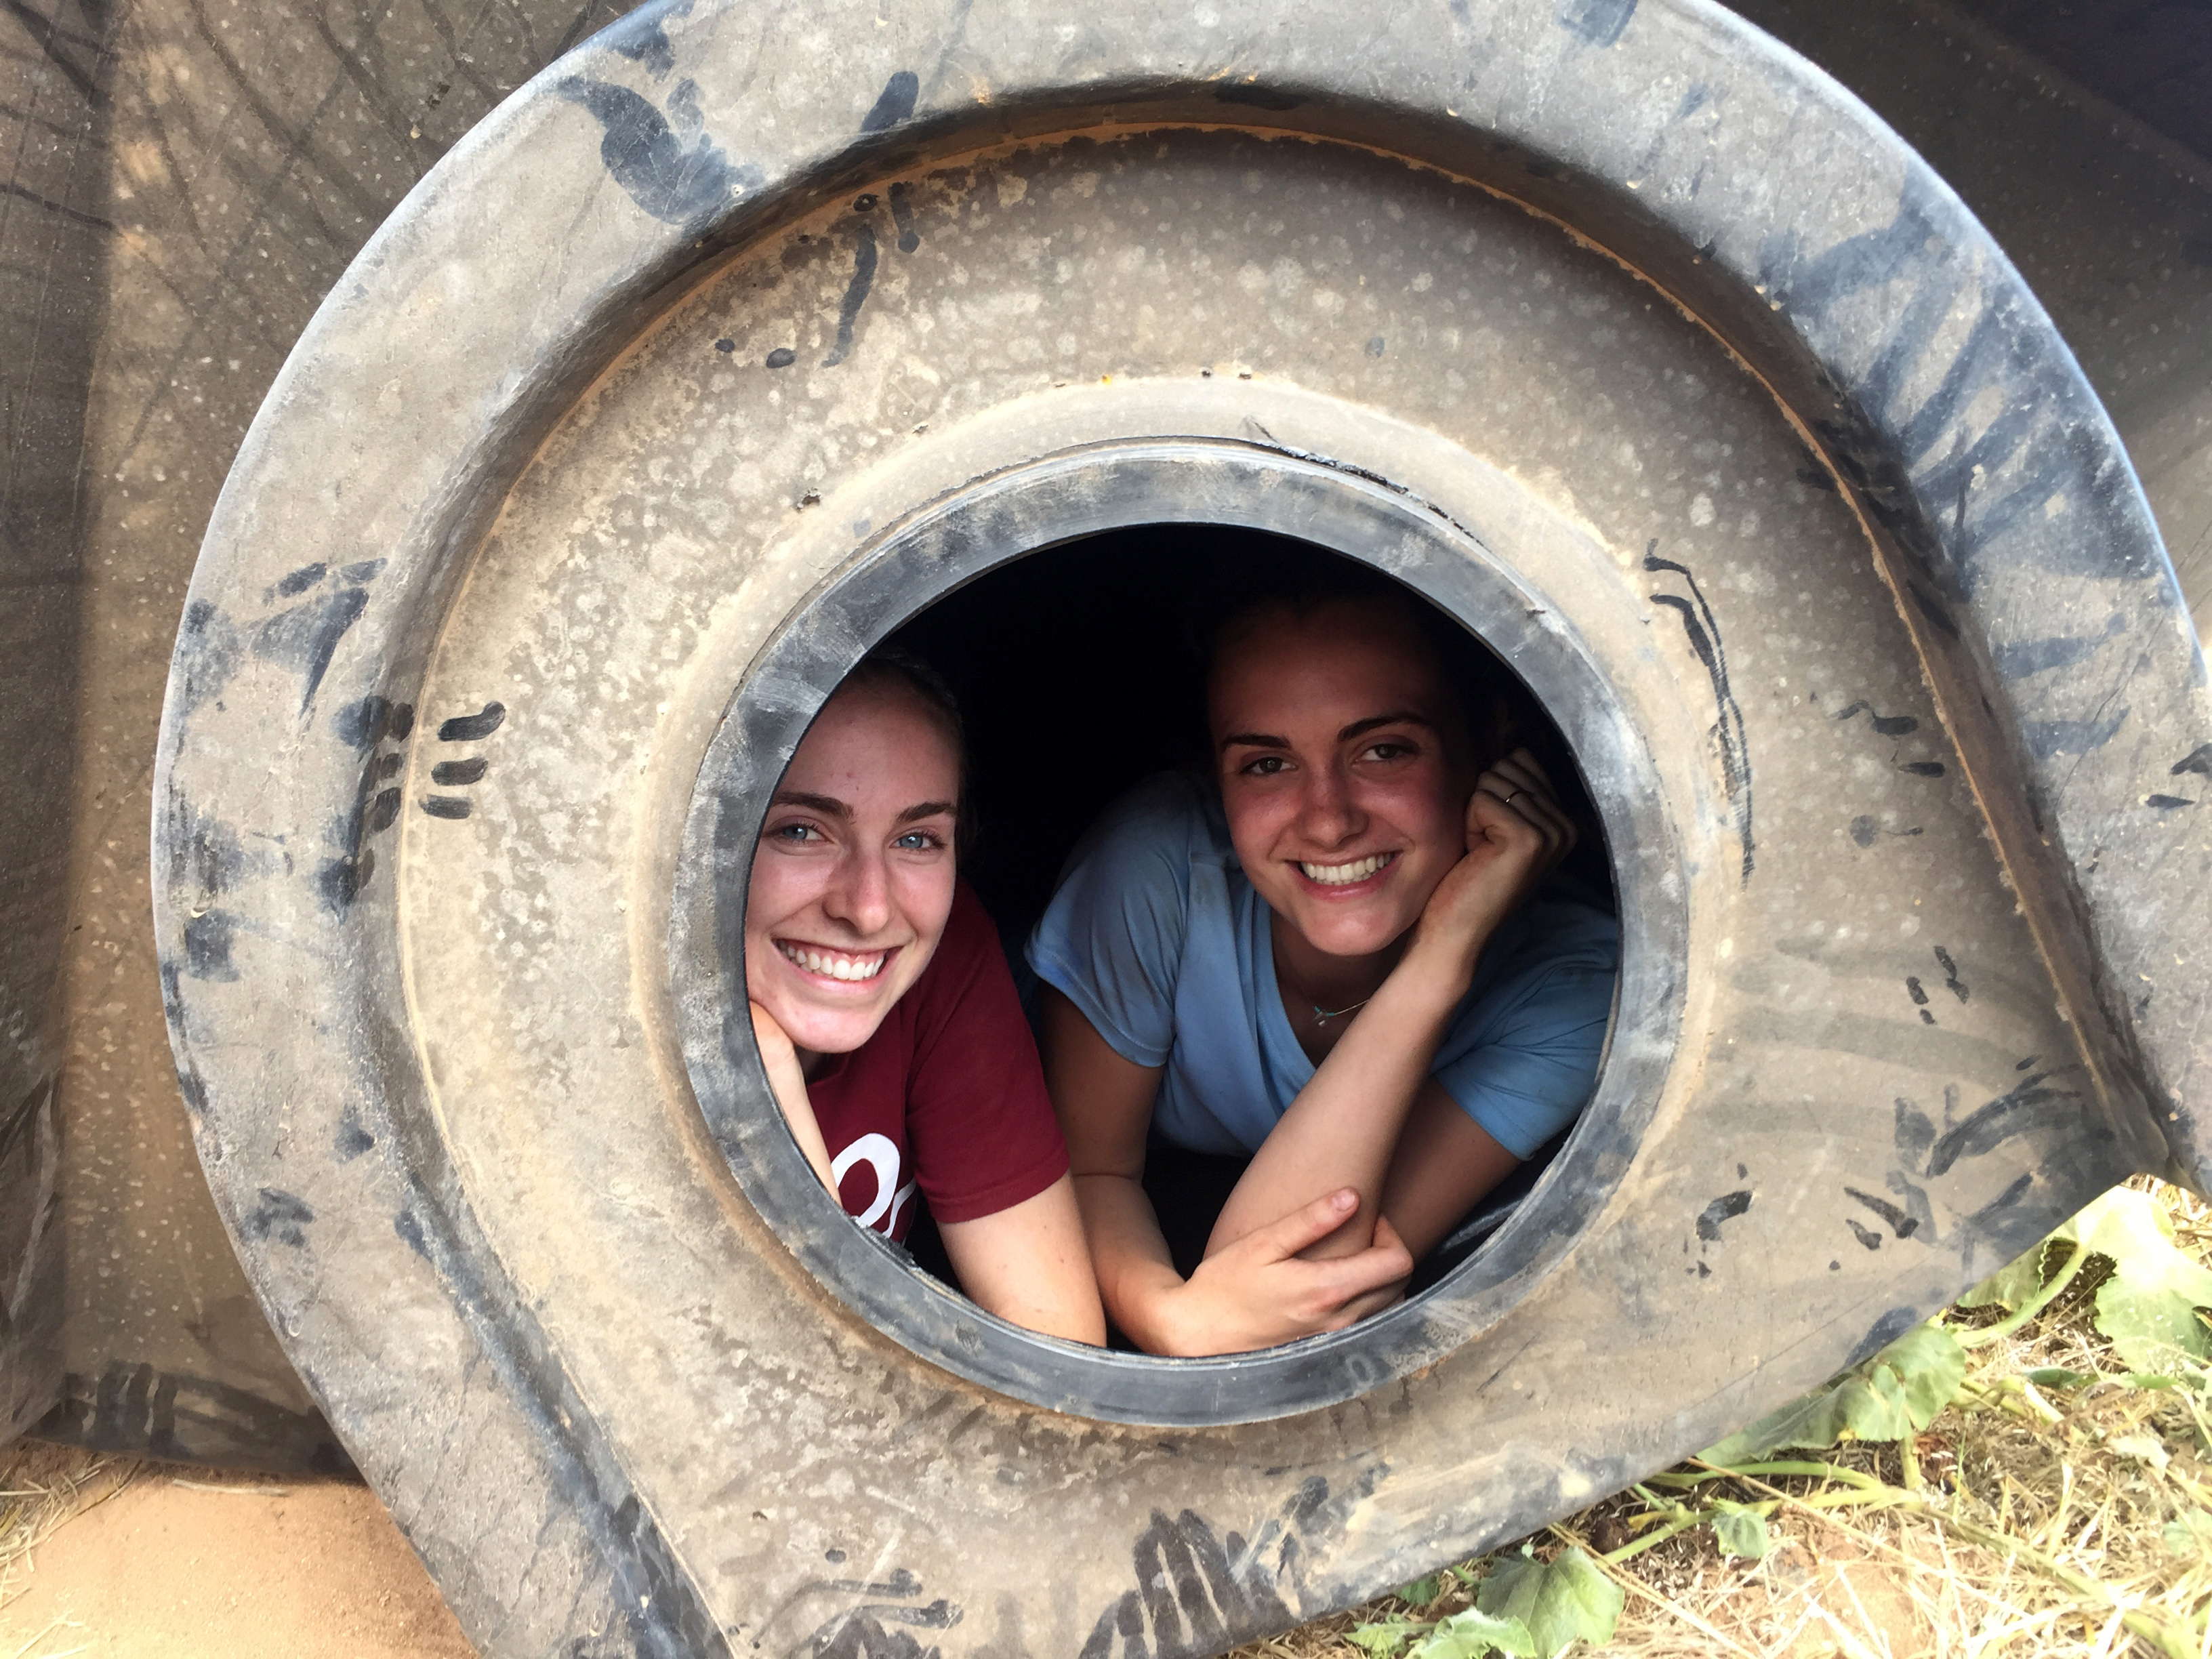 Sophie Pesek, S.B. '20 and Nicole Trenchard, S.B. '20 pose inside of a tank after installing the bulkhead connection that will allow Mkutani teachers to dispense water from the systems. The tank openings were so small that only a few members of the team could crawl in with headlamps and wrenches to tighten fittings. (Photo by Jerry Bowling)